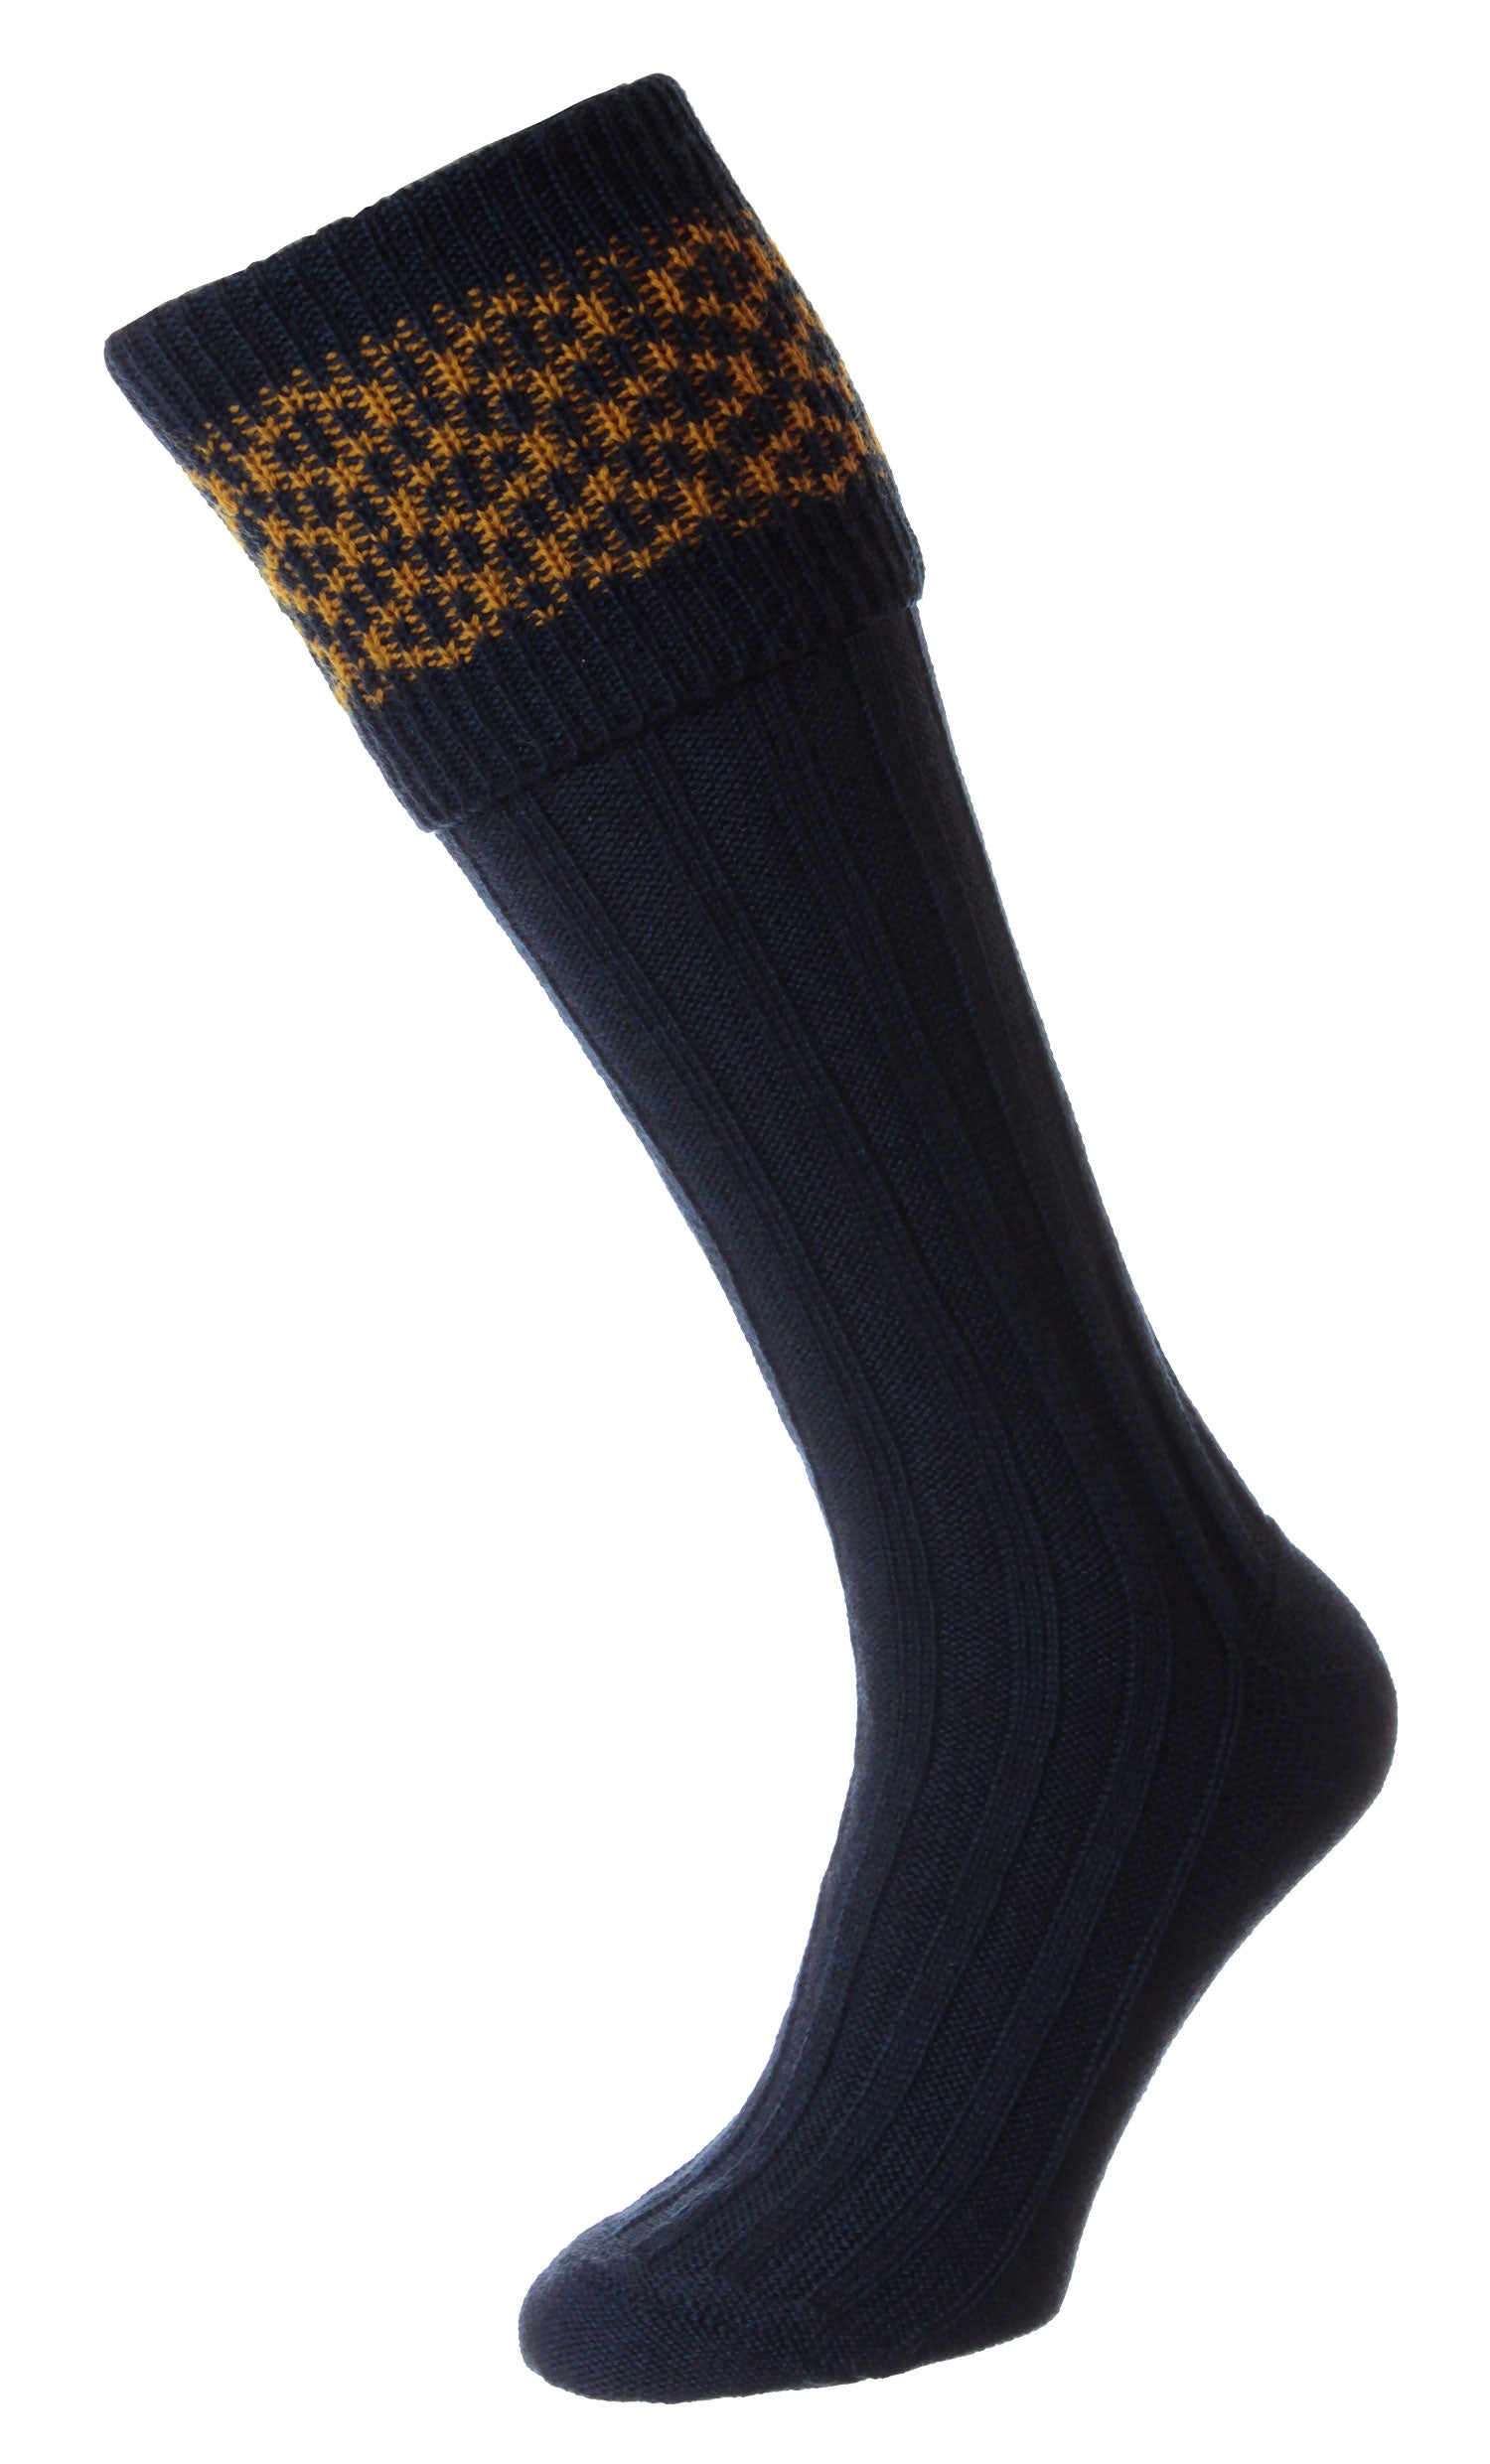 Navy HJ Hall Cushion Foot Shooting Sock | Patterned Top